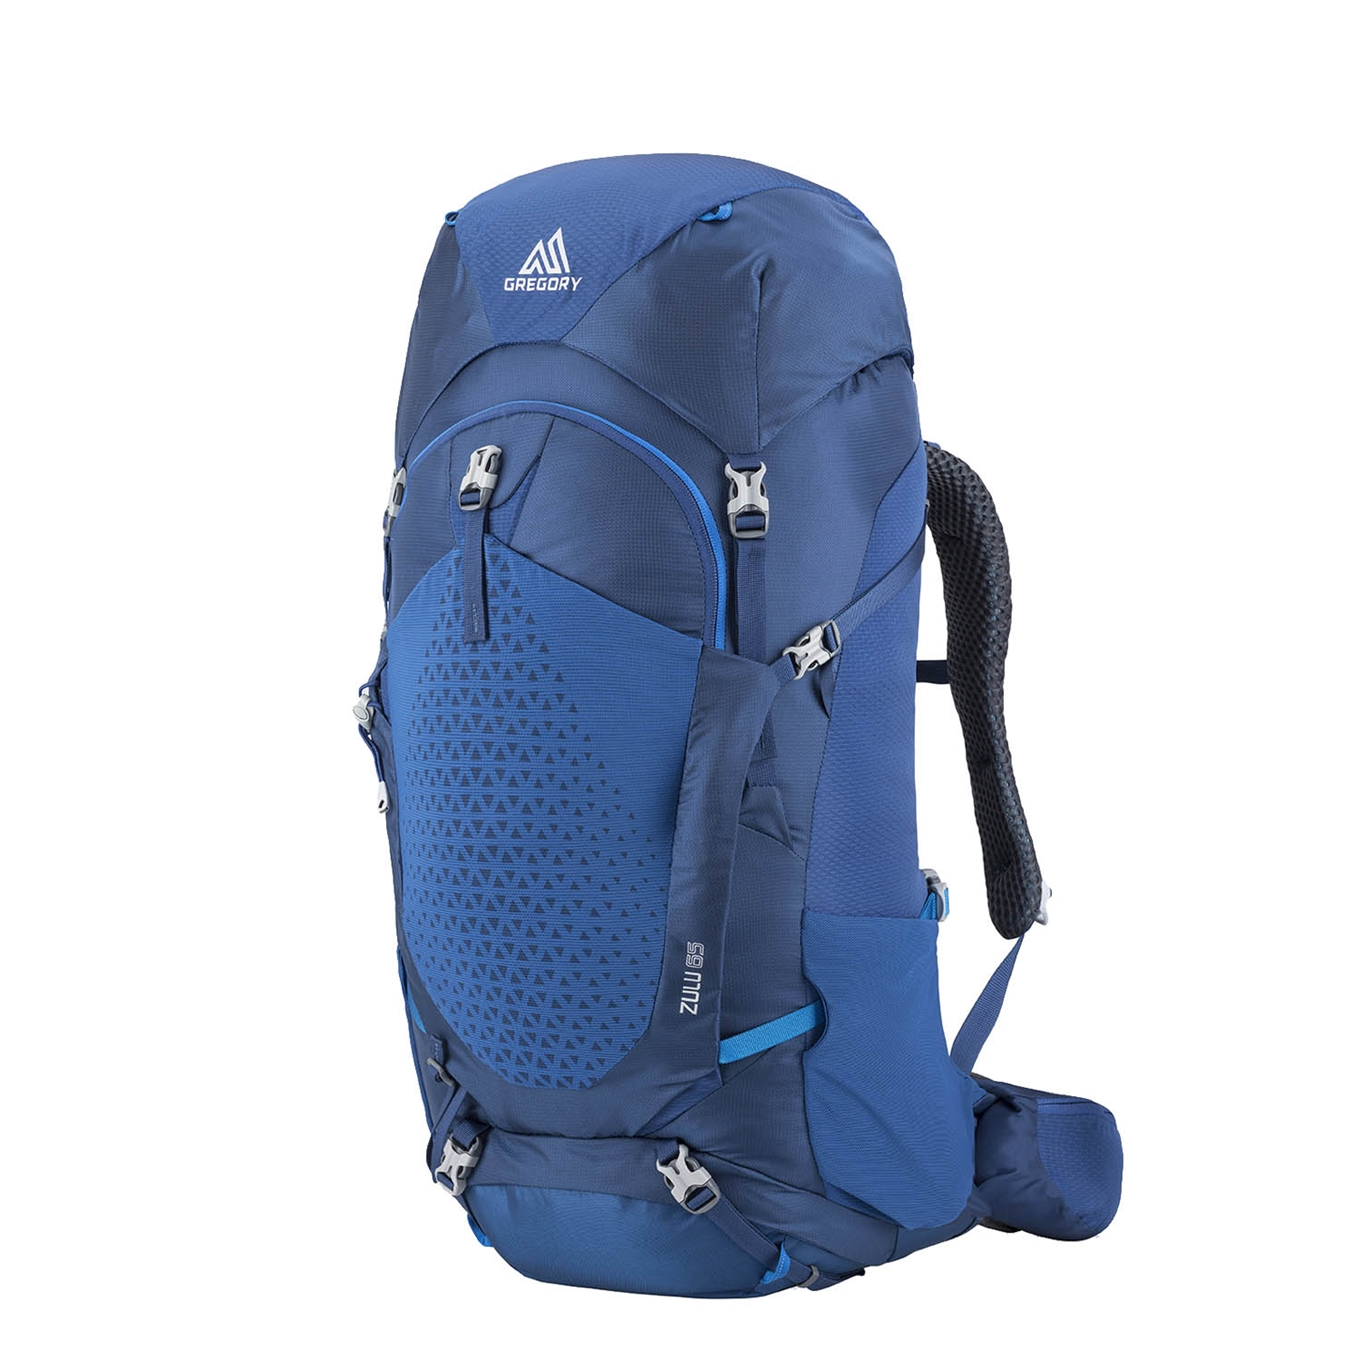 Gregory Zulu 65L Backpack M/L empire blue backpack <br/></noscript><img class=